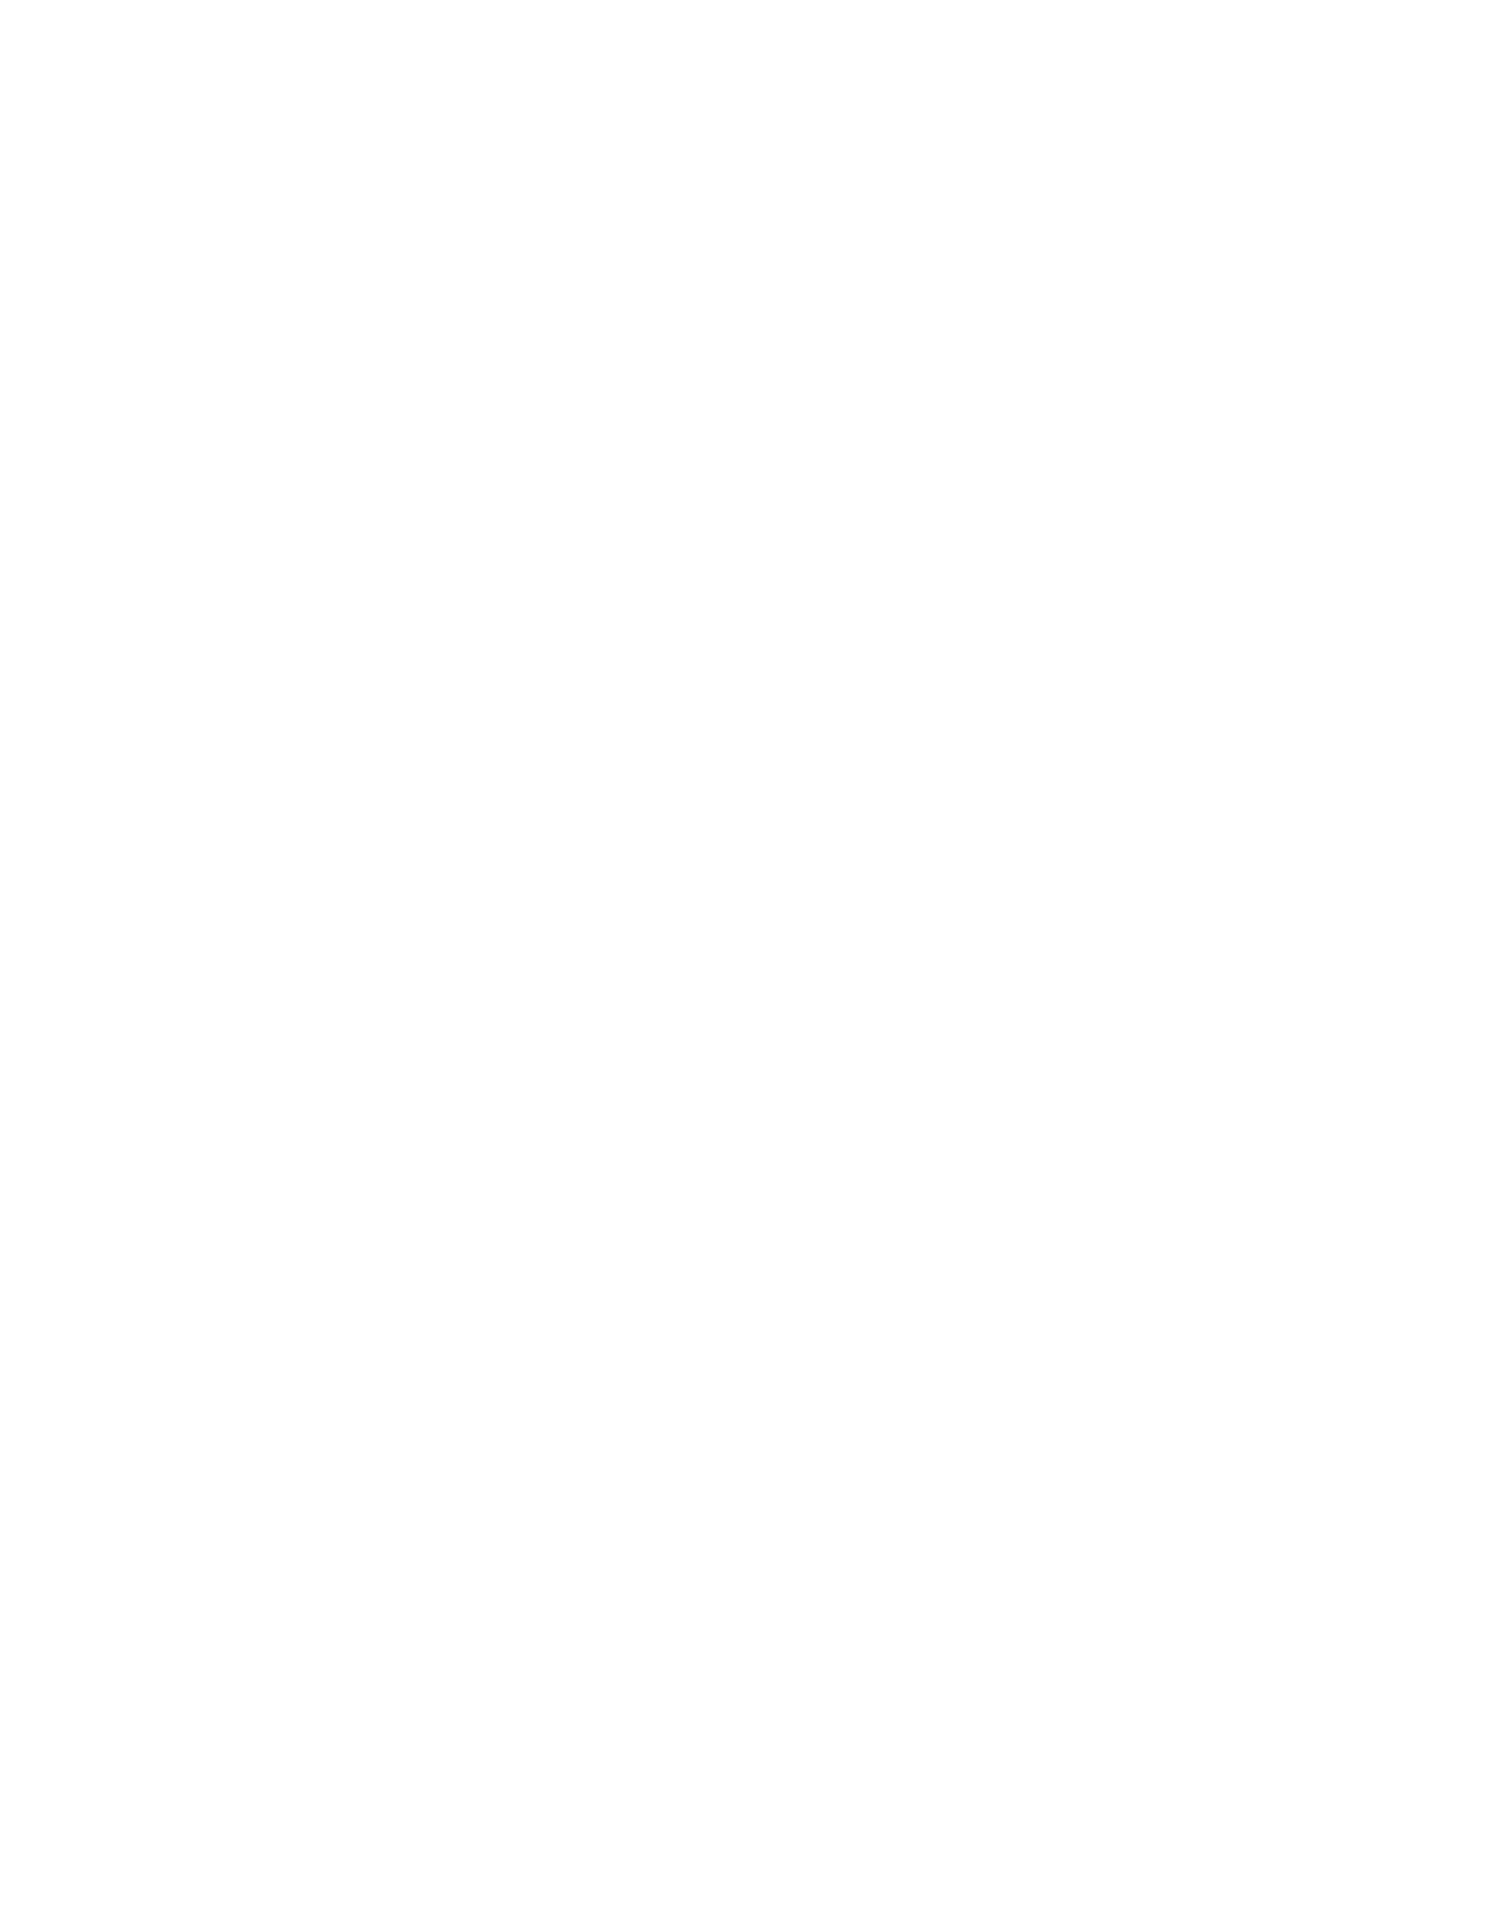 Glocal